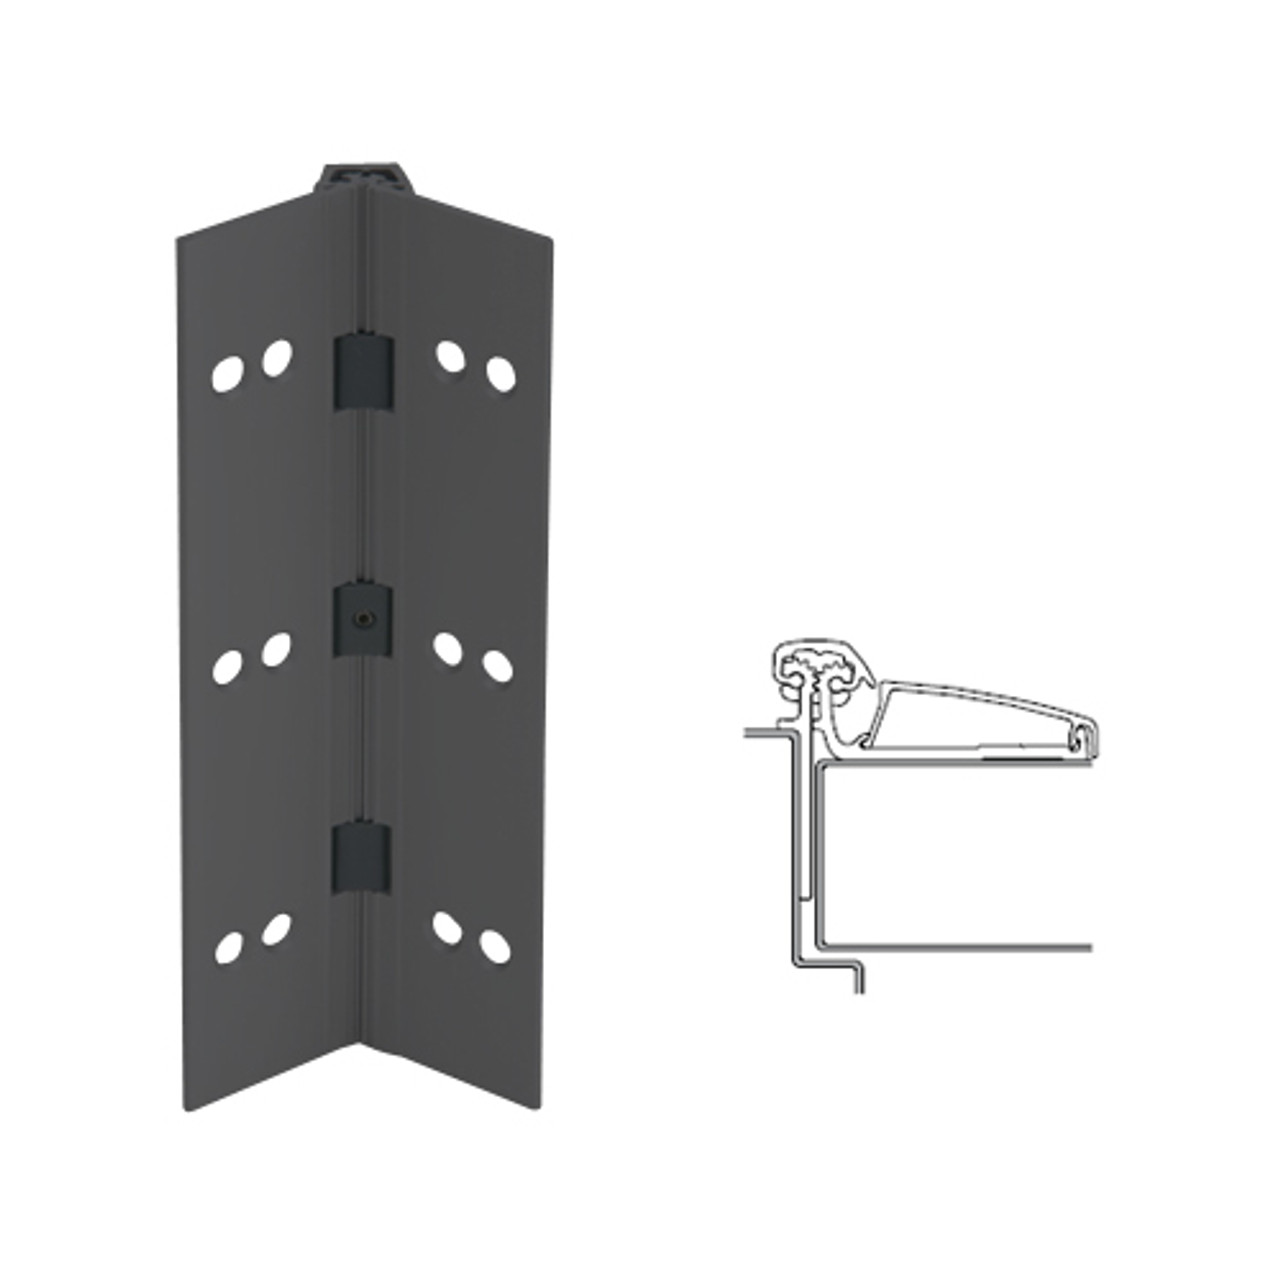 045XY-315AN-95-TF IVES Adjustable Half Surface Continuous Geared Hinges with Thread Forming Screws in Anodized Black